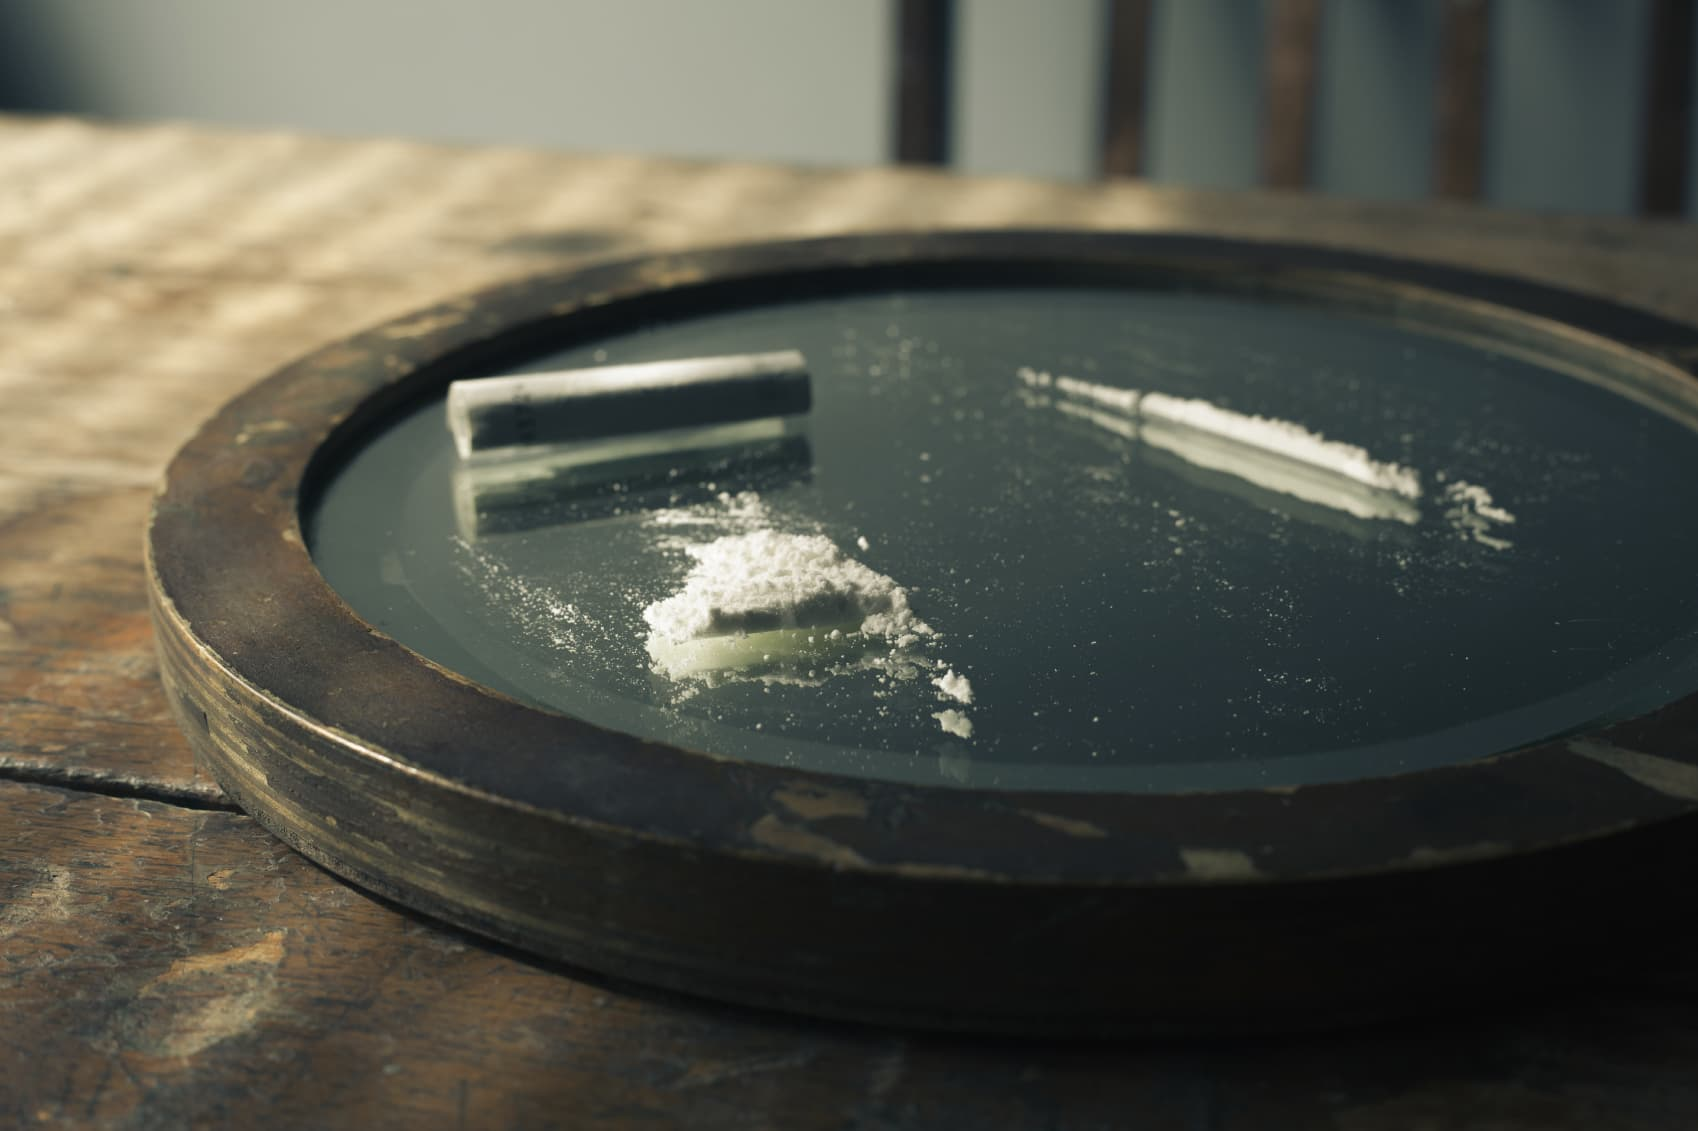 Who made the drug coke or who invented it?